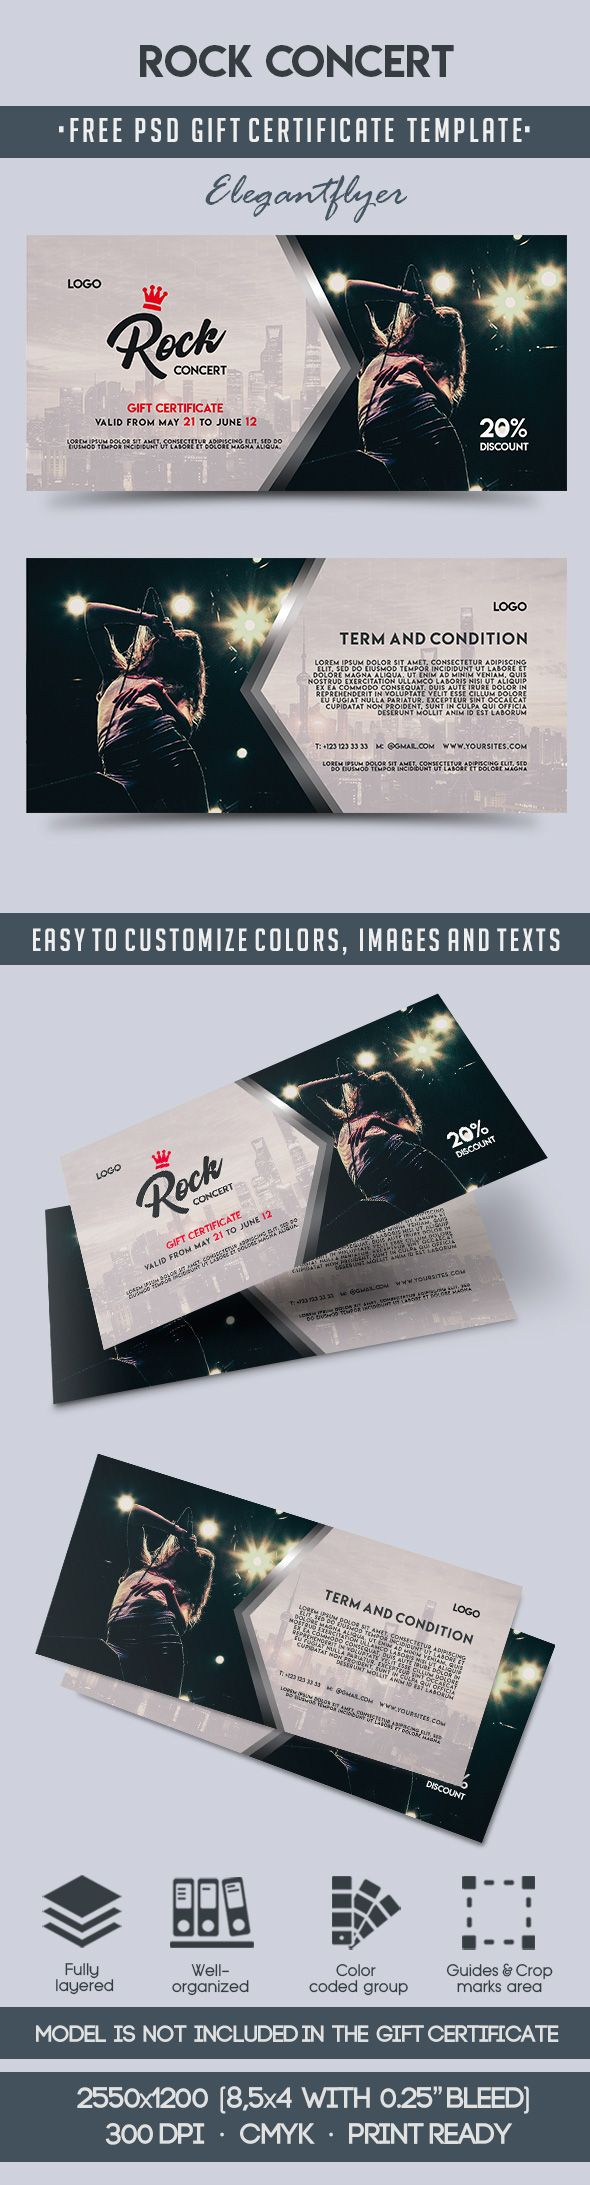 Rock Concert – Free Gift Certificate PSD Template